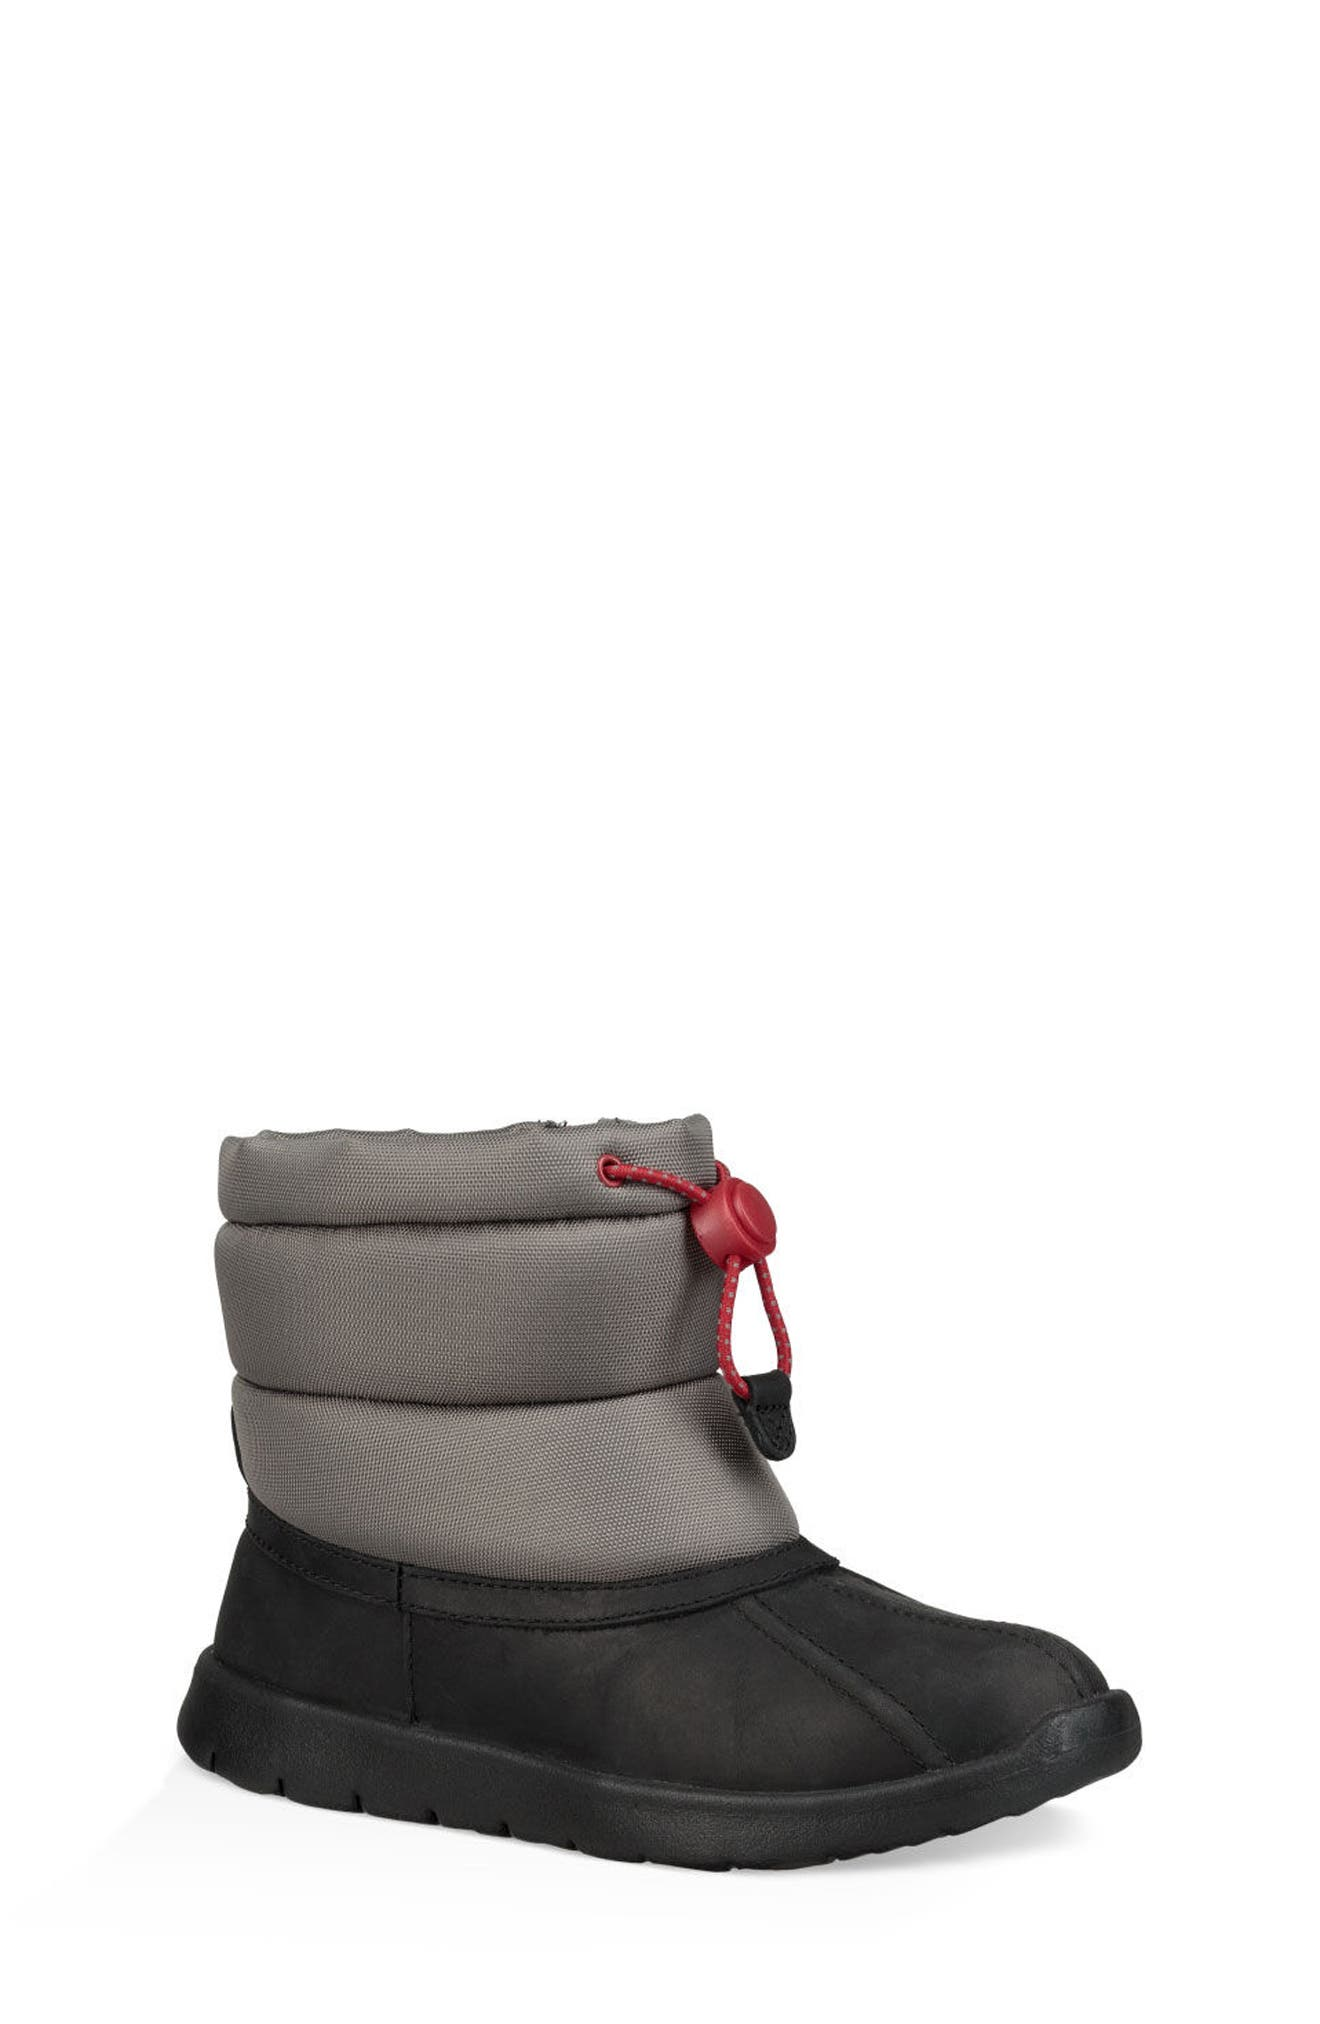 Puffer Winter Boot,                             Main thumbnail 1, color,                             BLACK